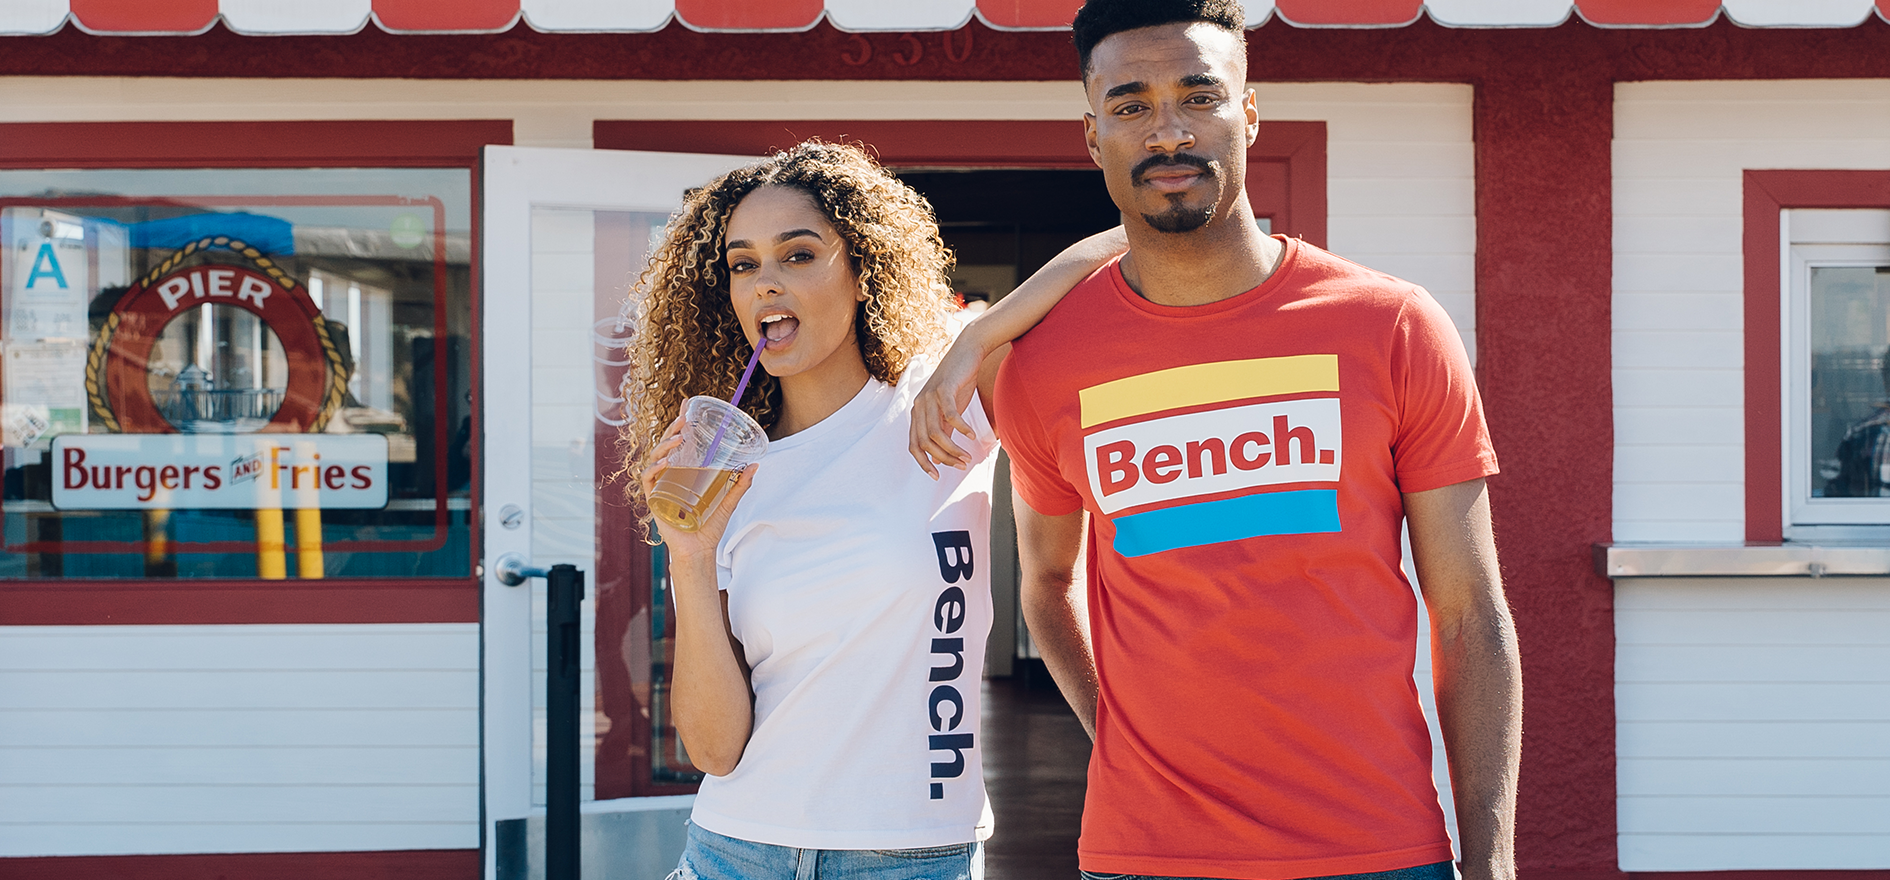 Bench Clothing - Live for the city